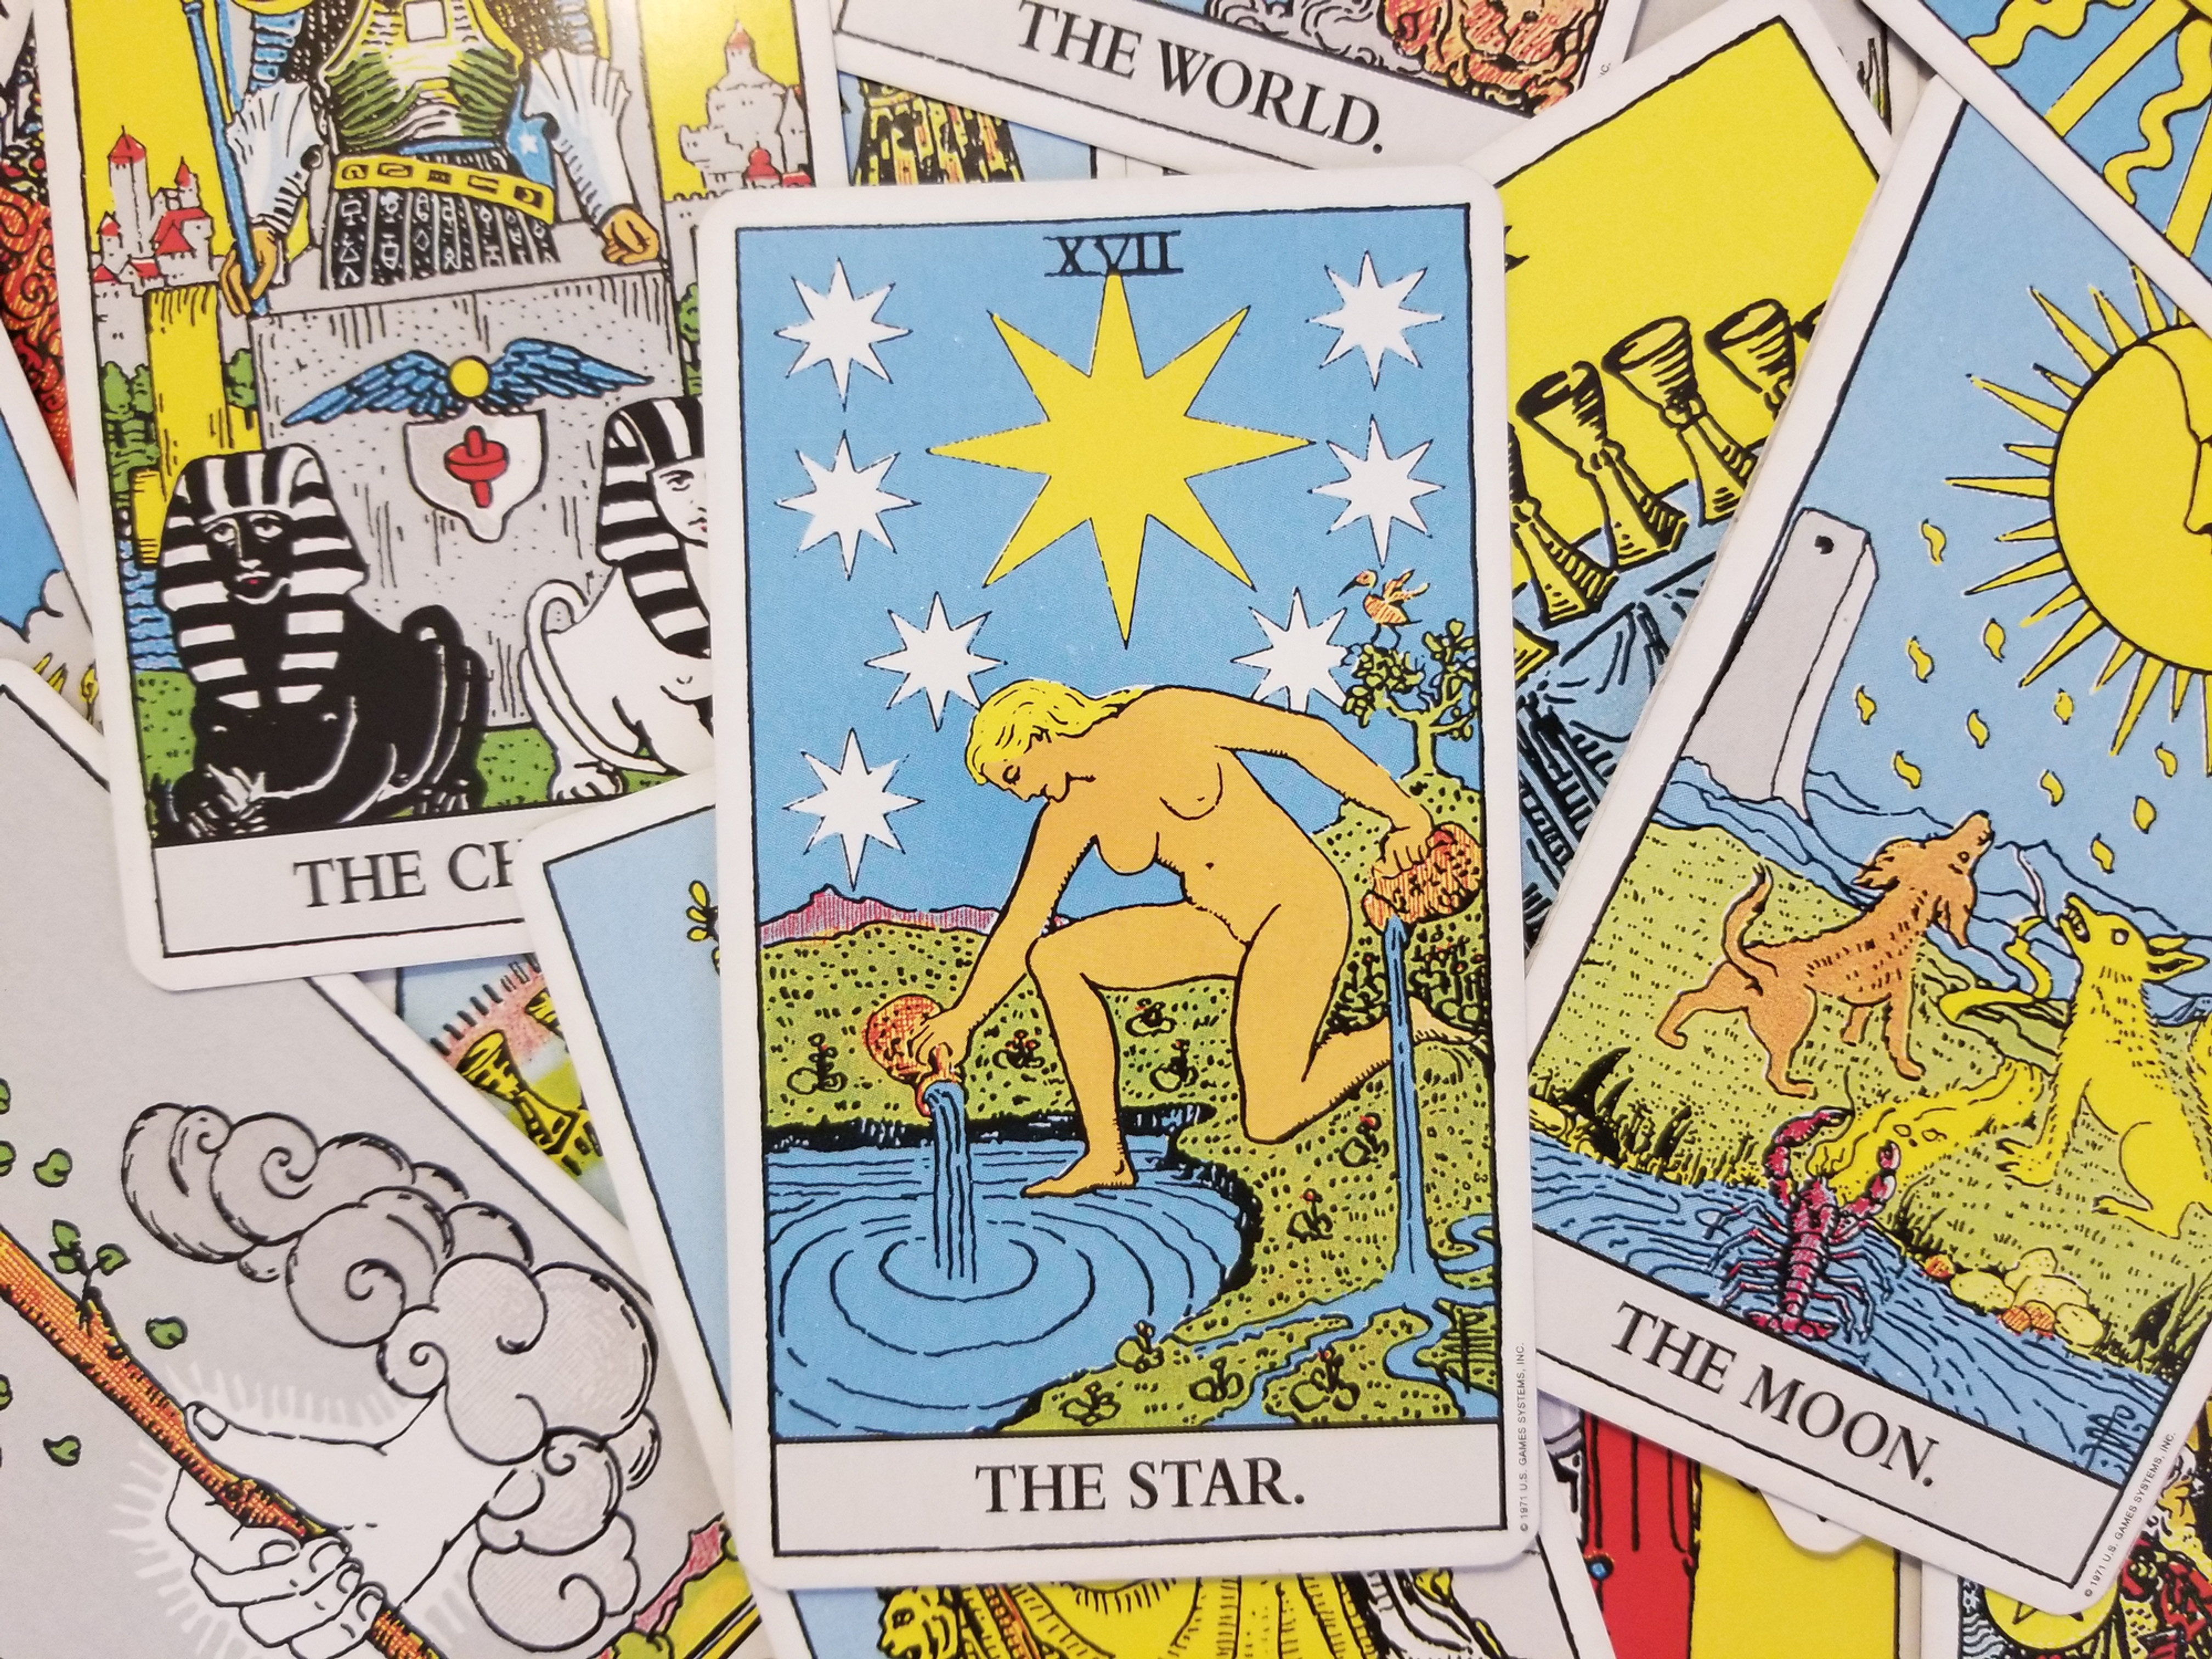 15 minute tarot reading by phone